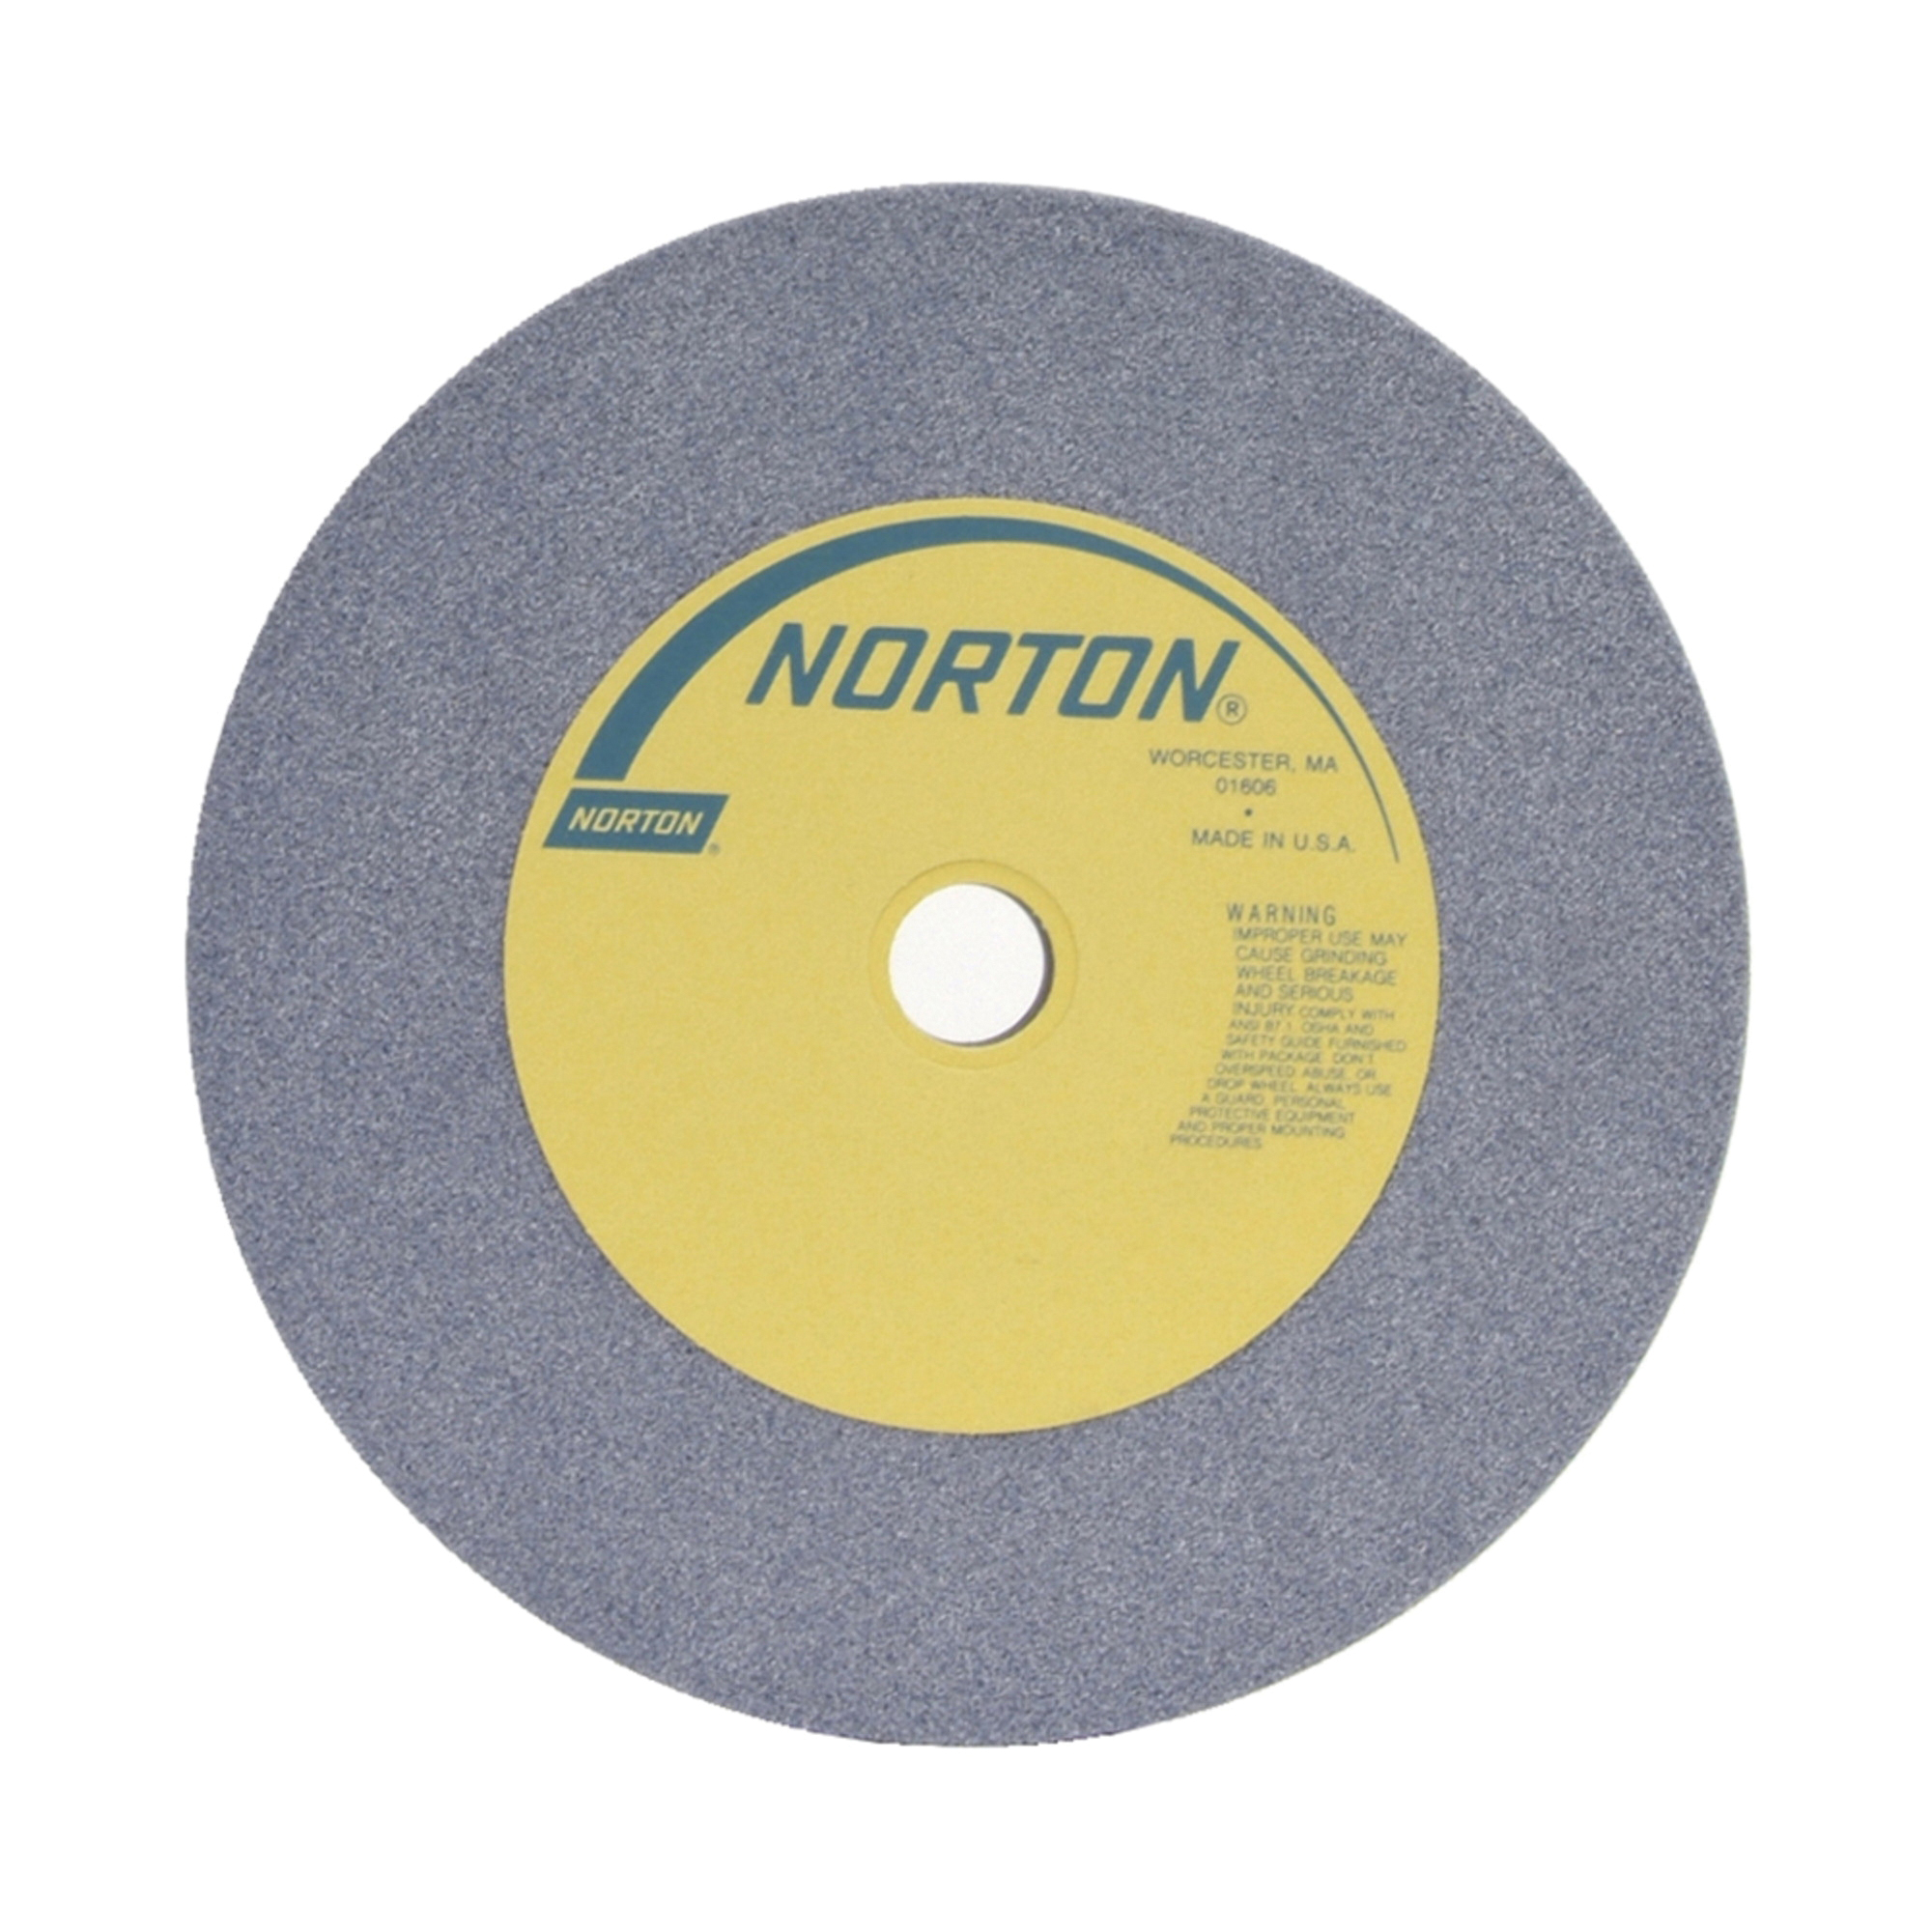 Norton® 66253263461 32A Straight Toolroom Wheel, 12 in Dia x 2 in THK, 1-1/4 in Center Hole, 46 Grit, Aluminum Oxide Abrasive